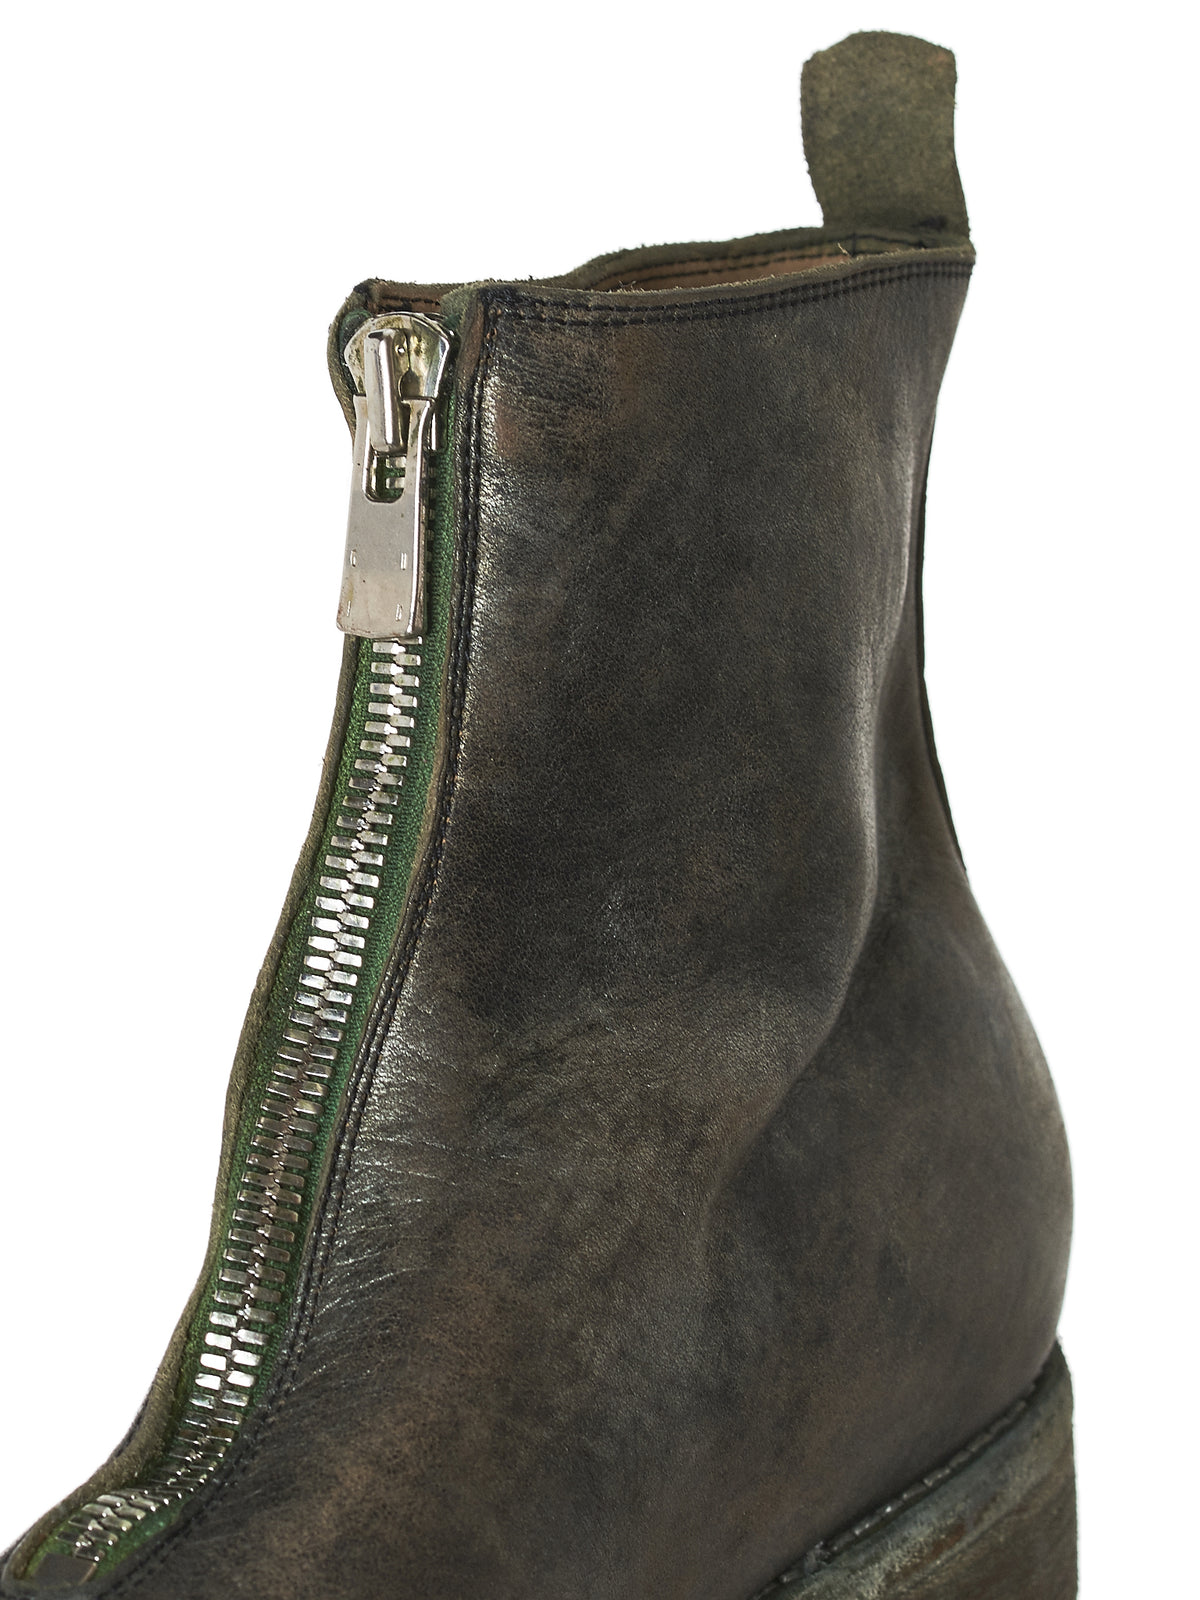 Guidi 'PL1' Boot - Hlorenzo Detail 2